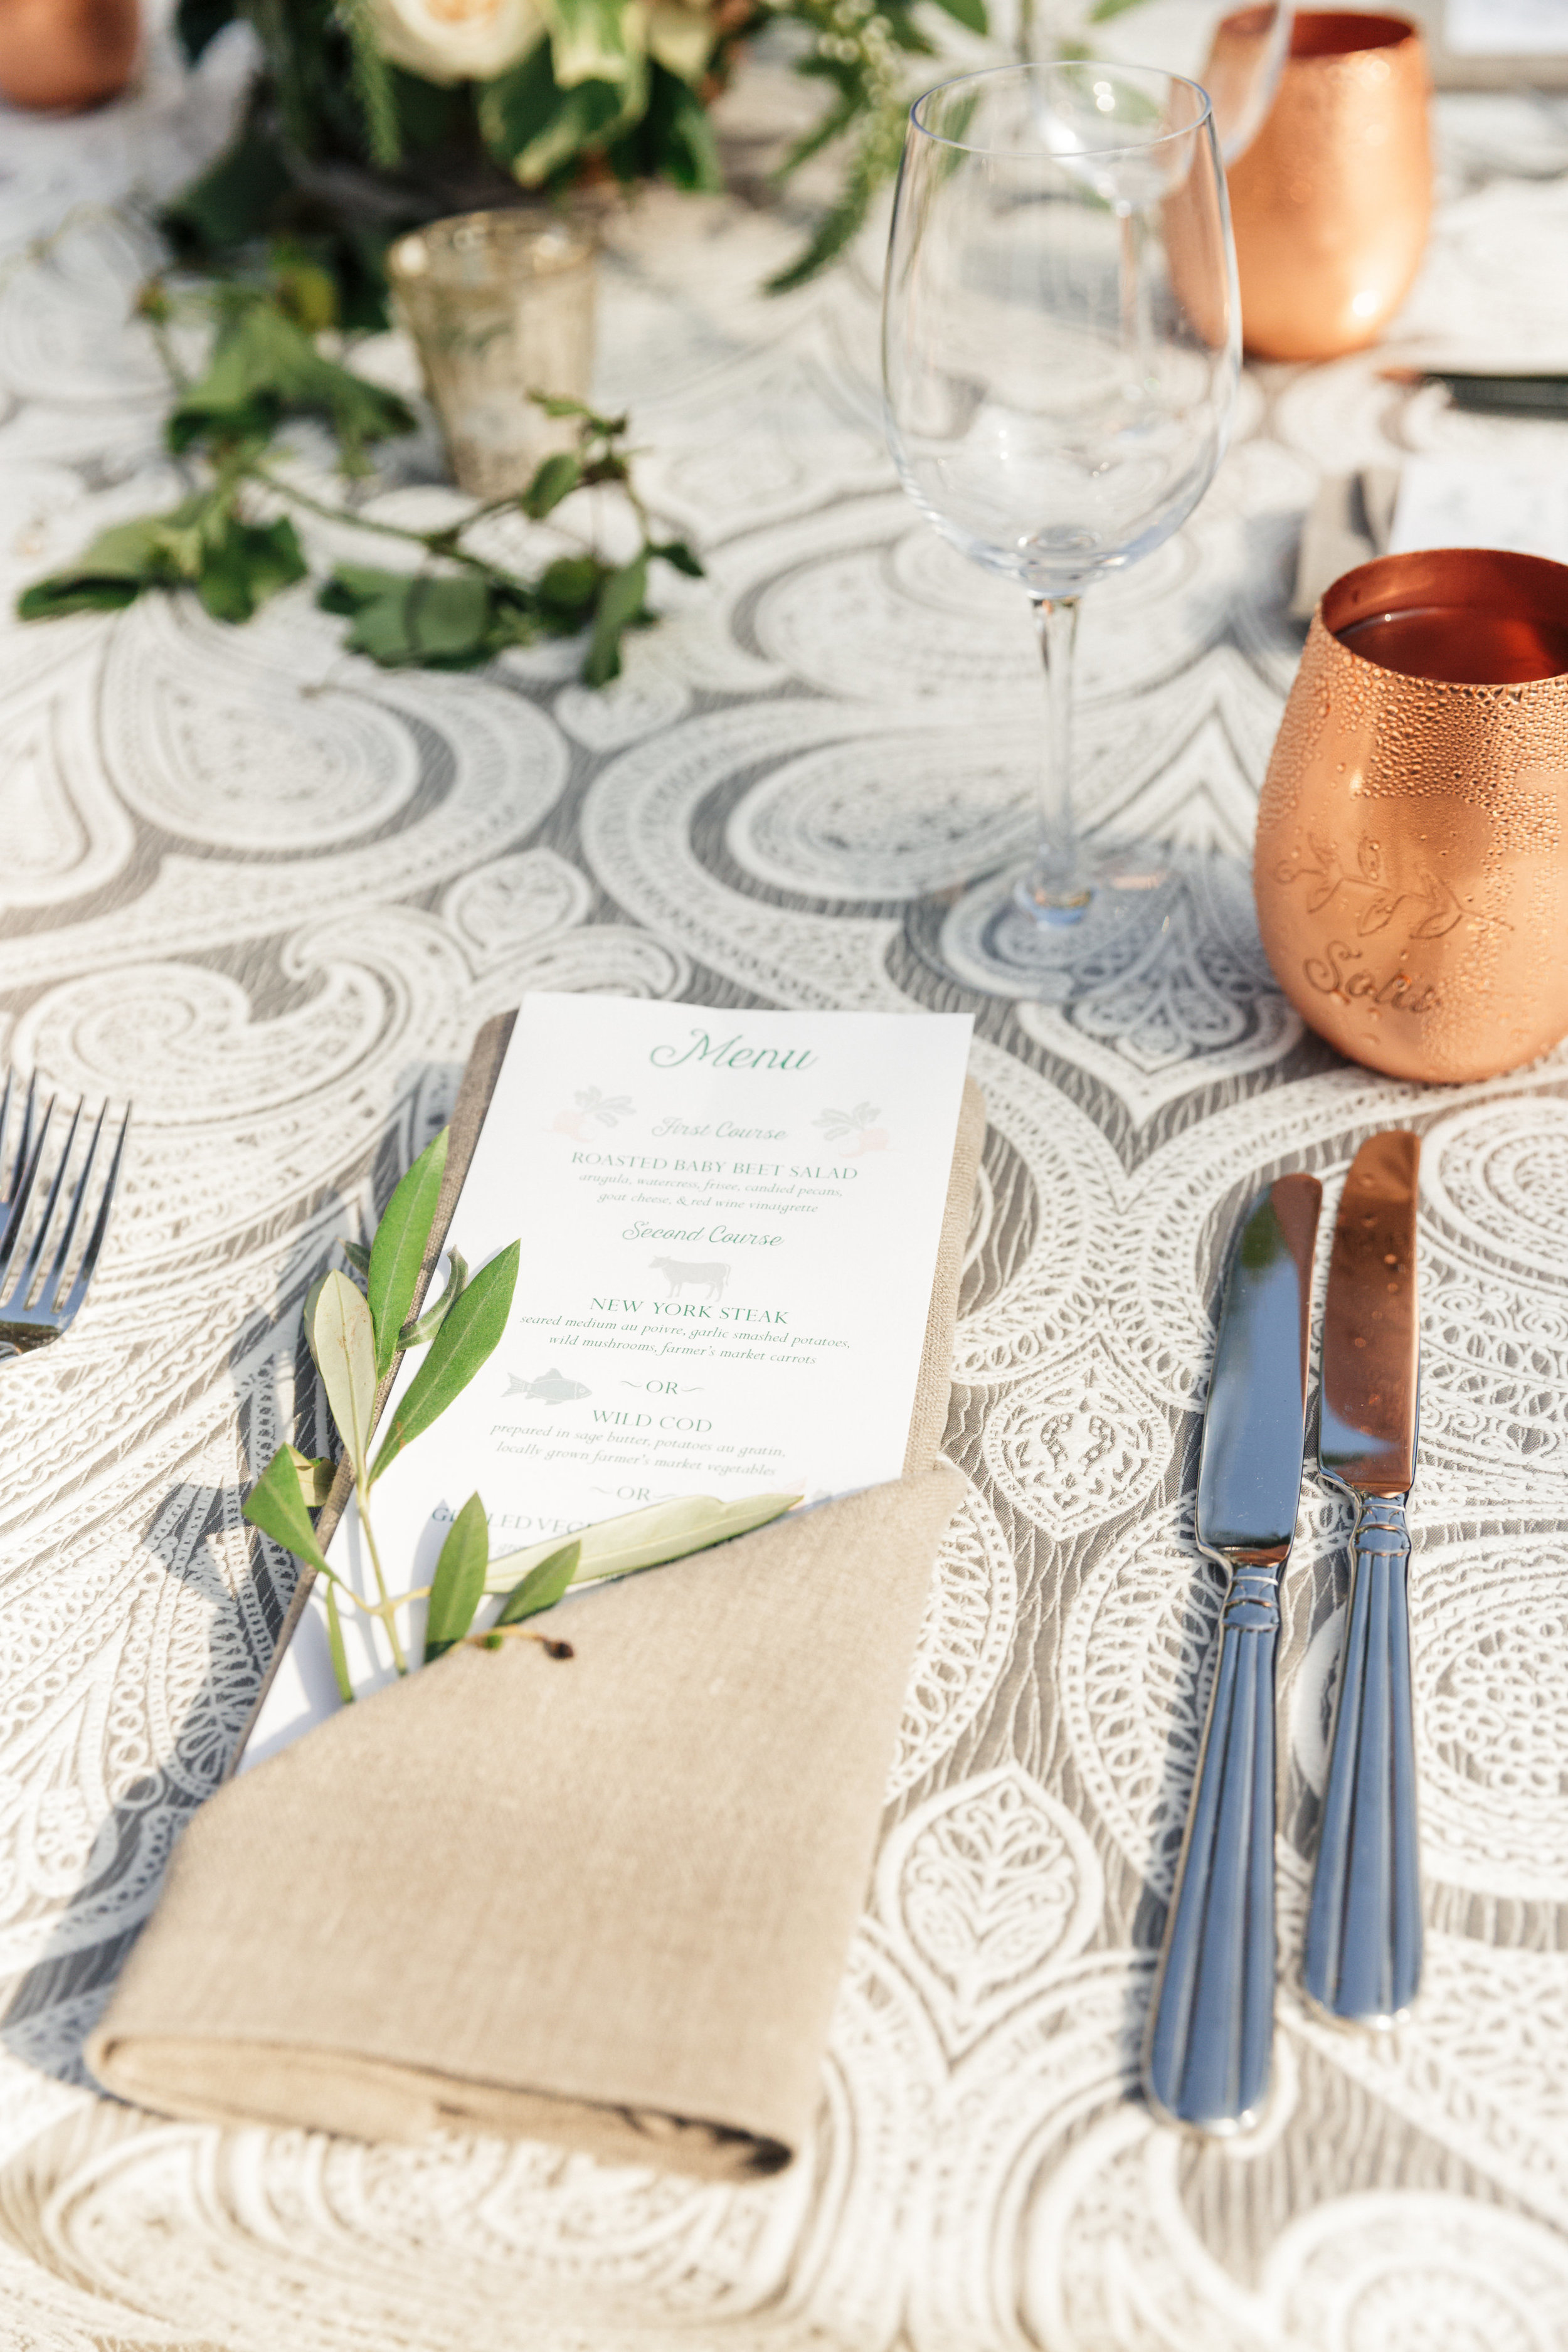 www.santabarbarawedding.com | Sanaz Photography | The Riviera Mansion | Place Setting